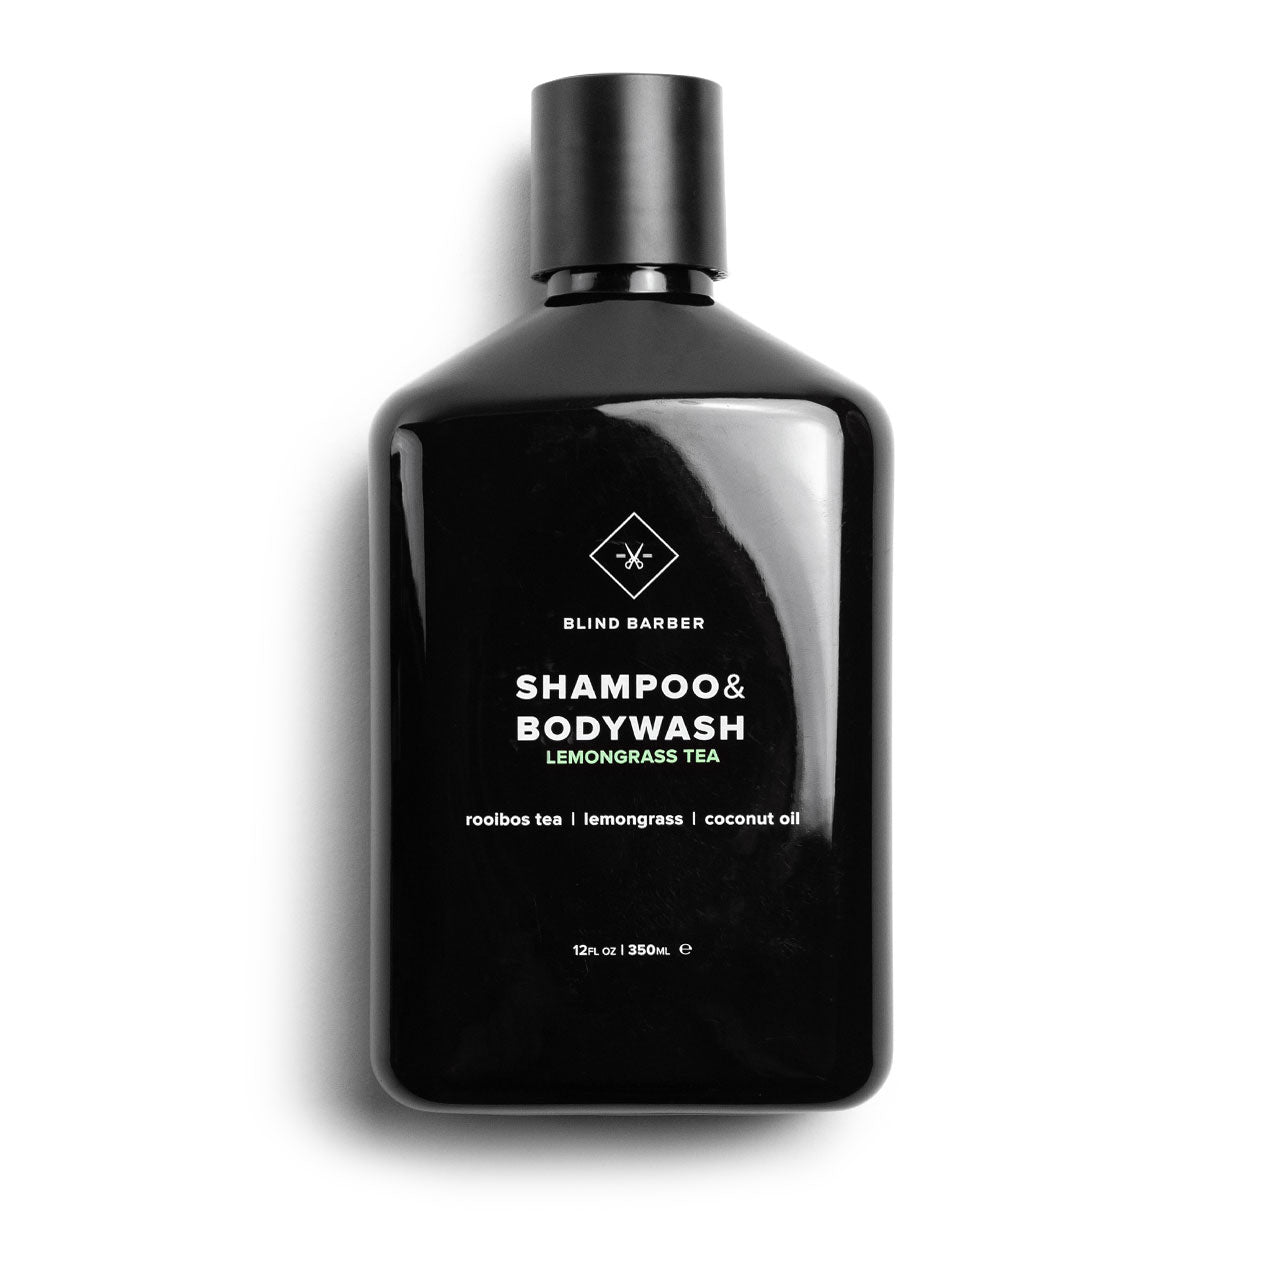 Blind Barber Shampoo & Body Wash